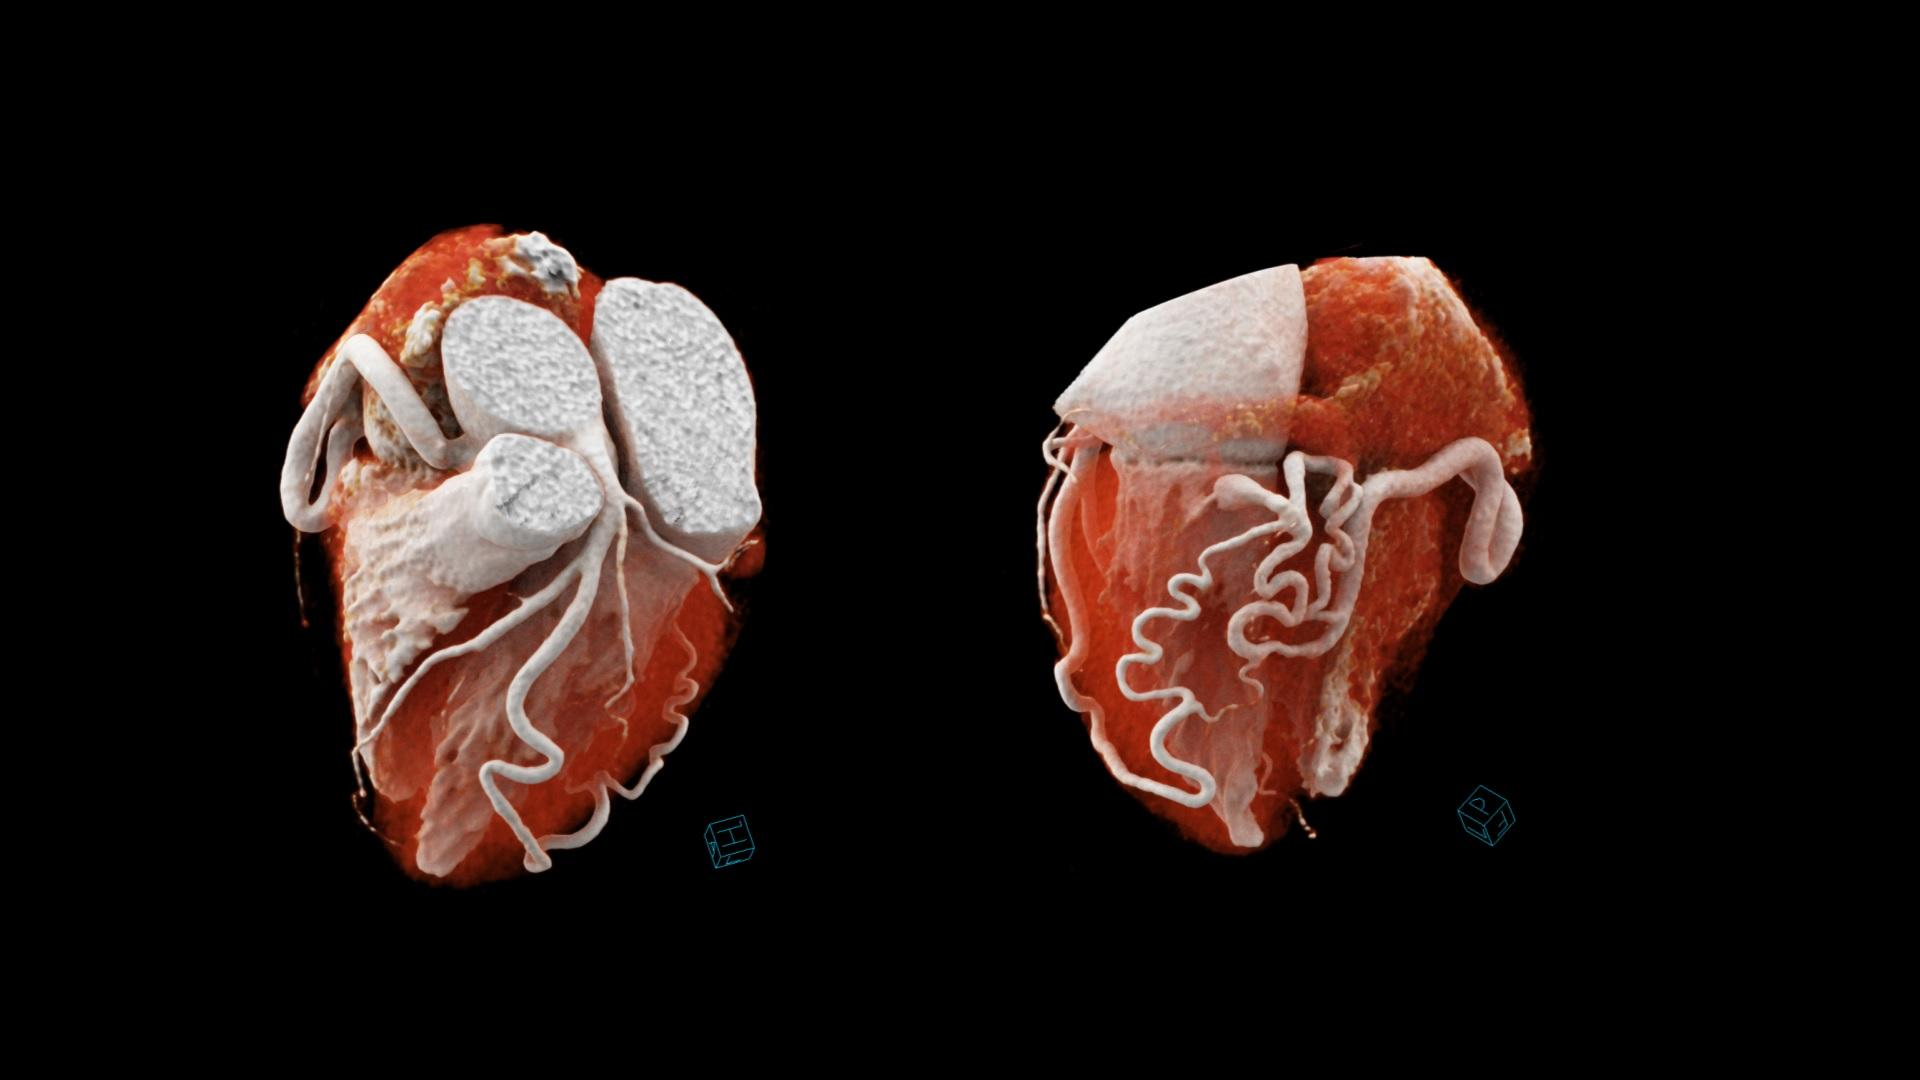 cVRT images show the torturous trajectory of the dilated RCA and D1, connecting distally, and a single fistula draining into the LV chamber.